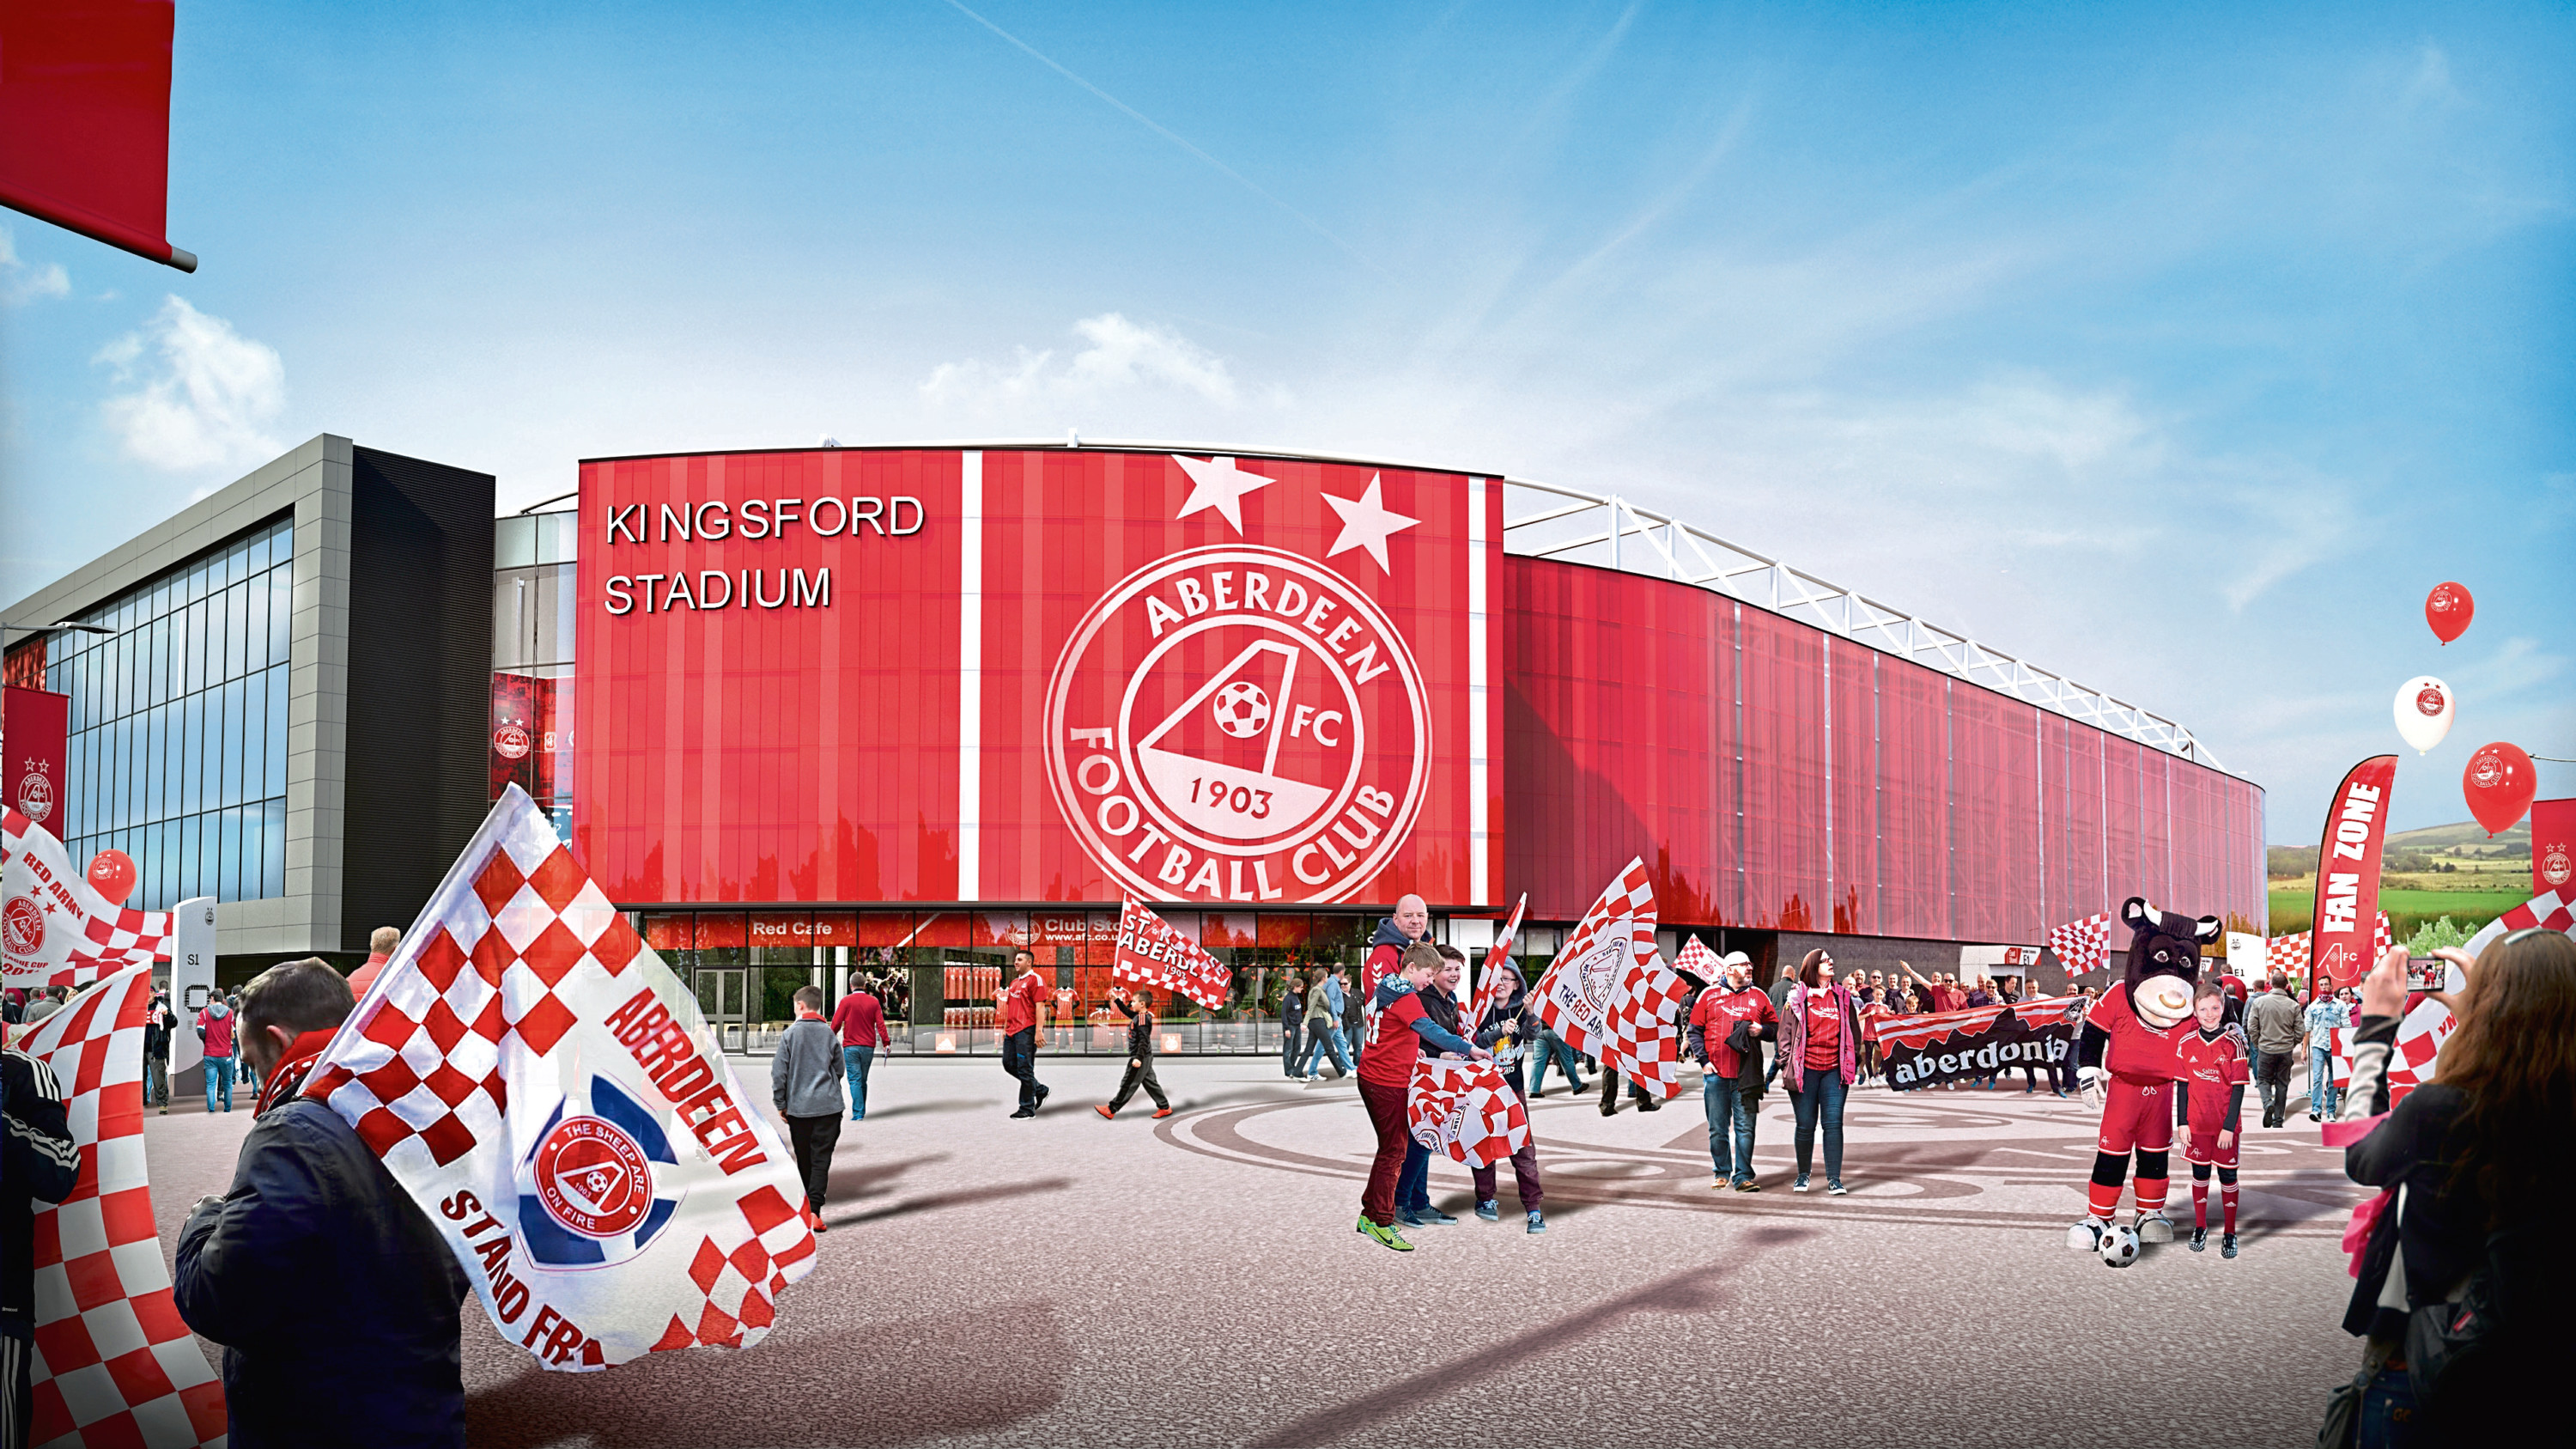 The planned Aberdeen FC stadium at Kingsford.